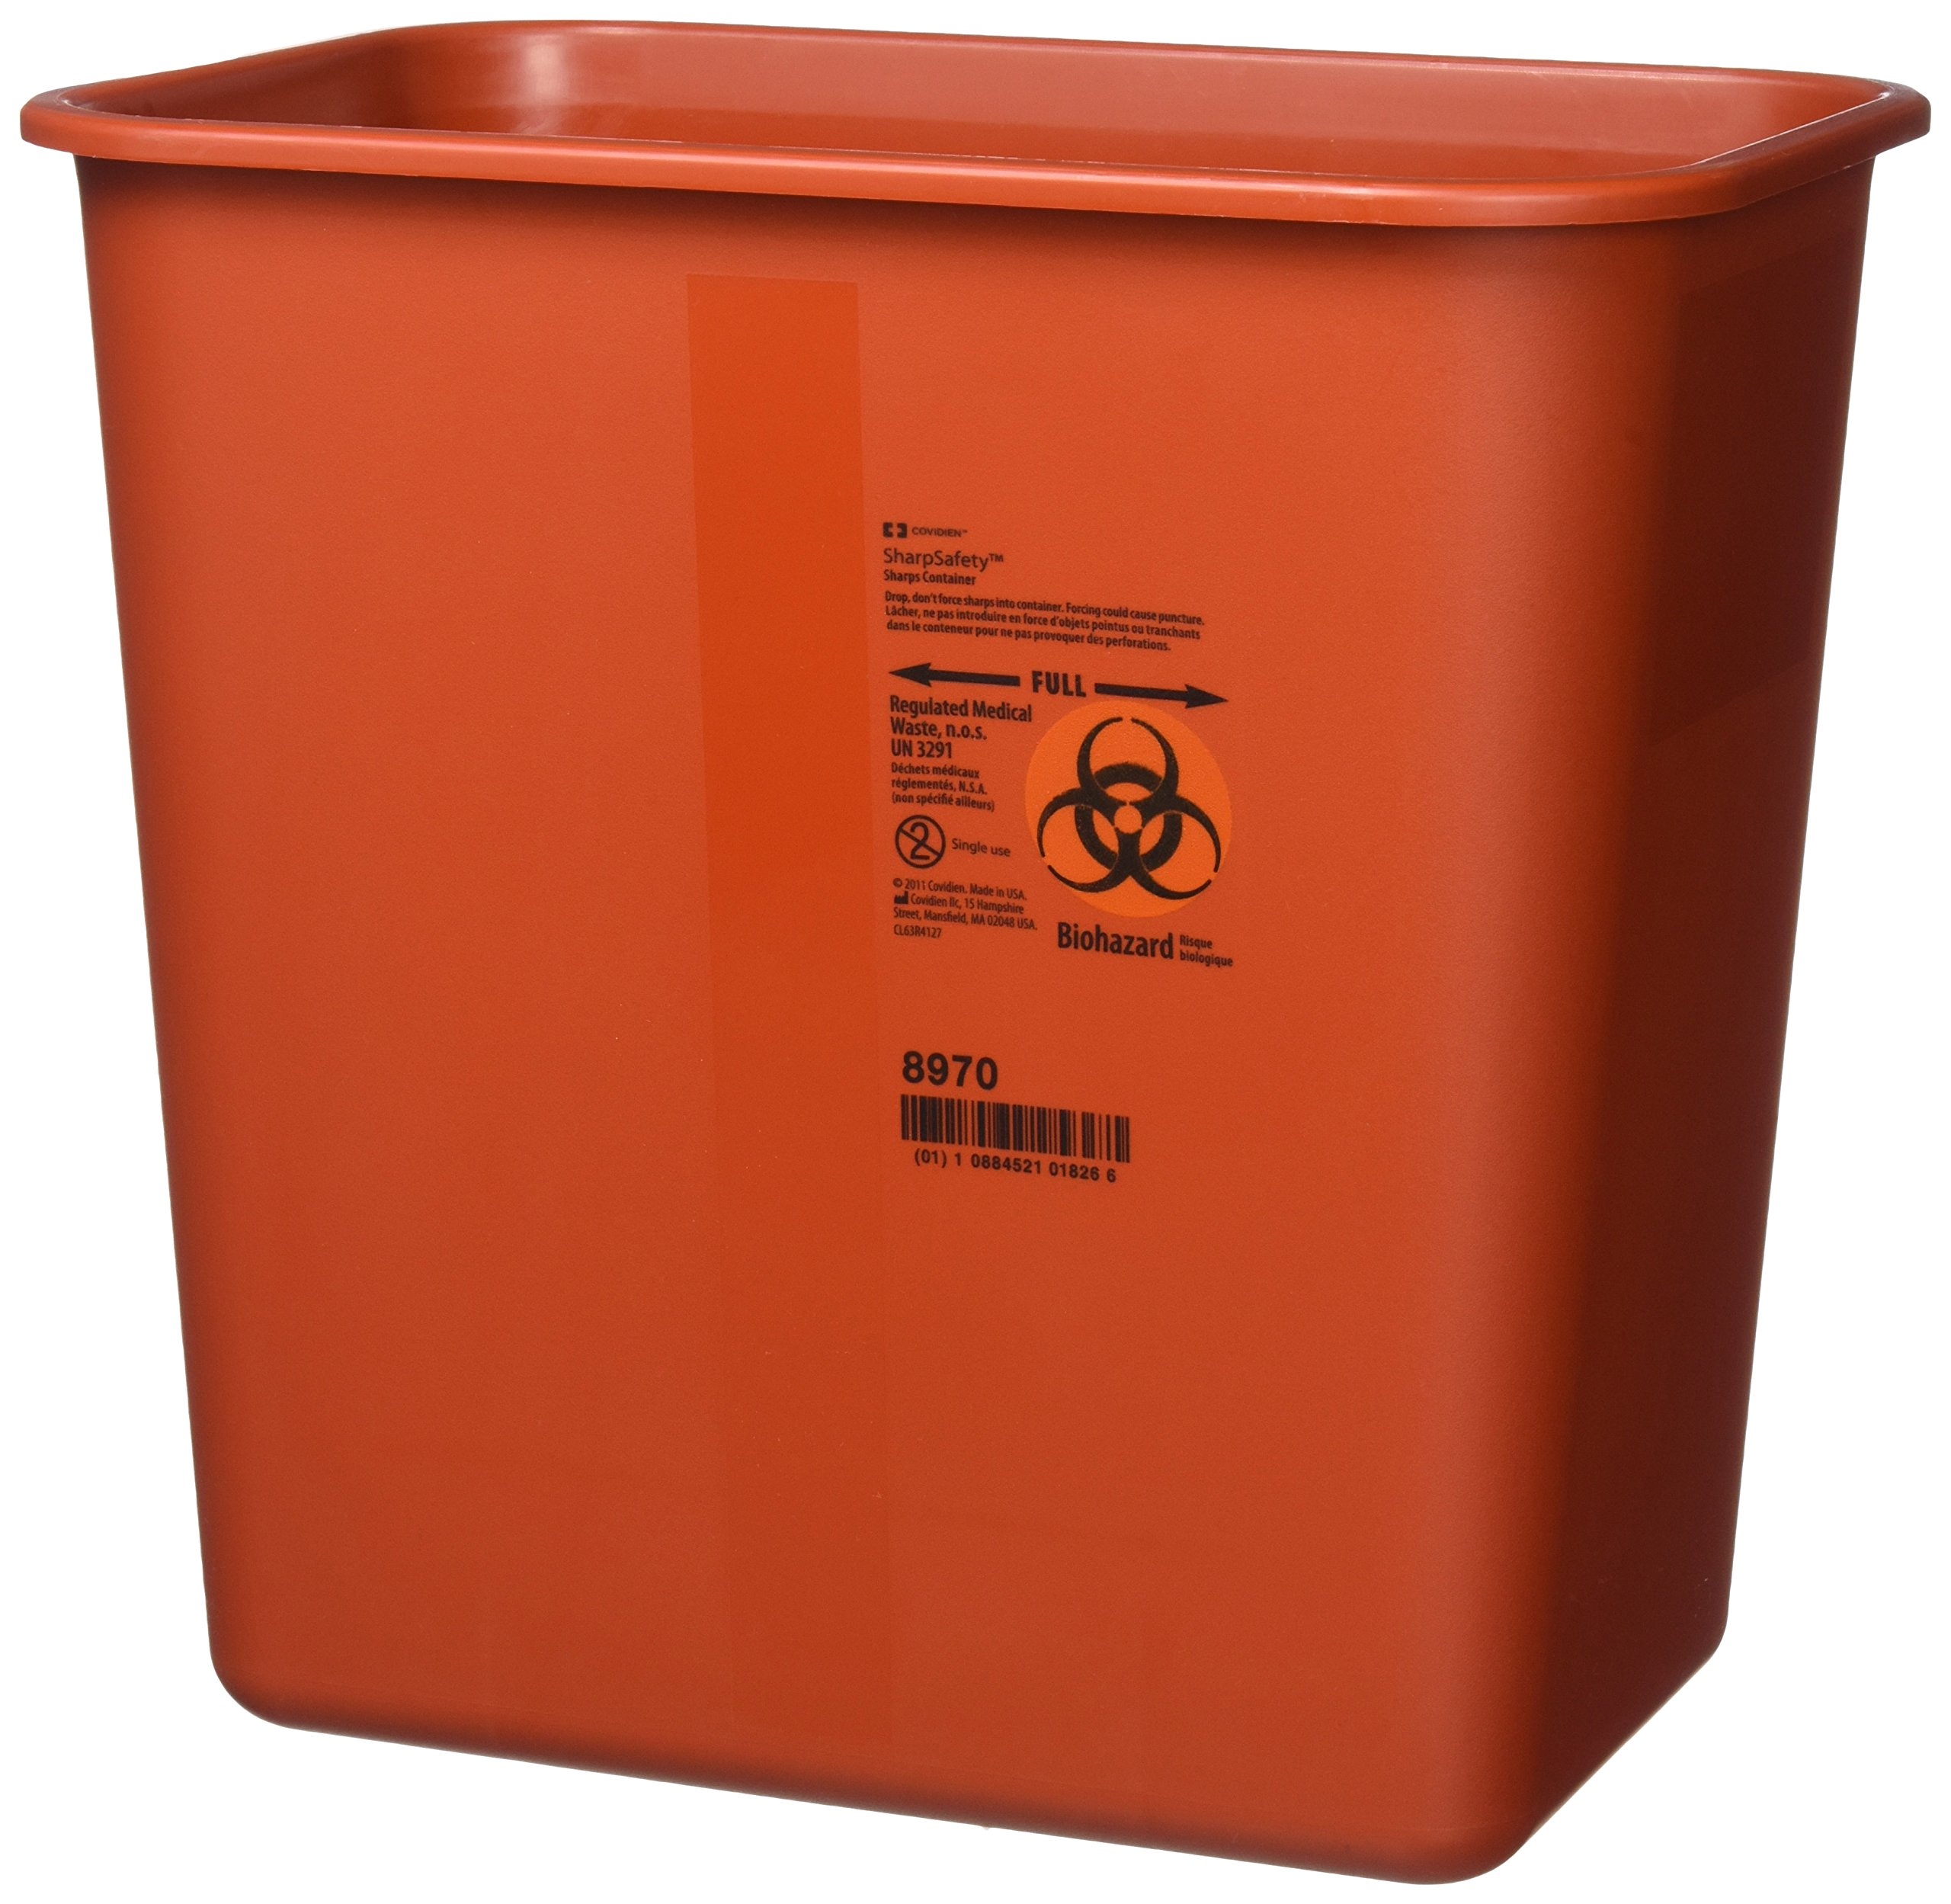 Kendall Sharps Container with Rotor Lid - 2 Gallon - Pack of 3 by Sharps Container